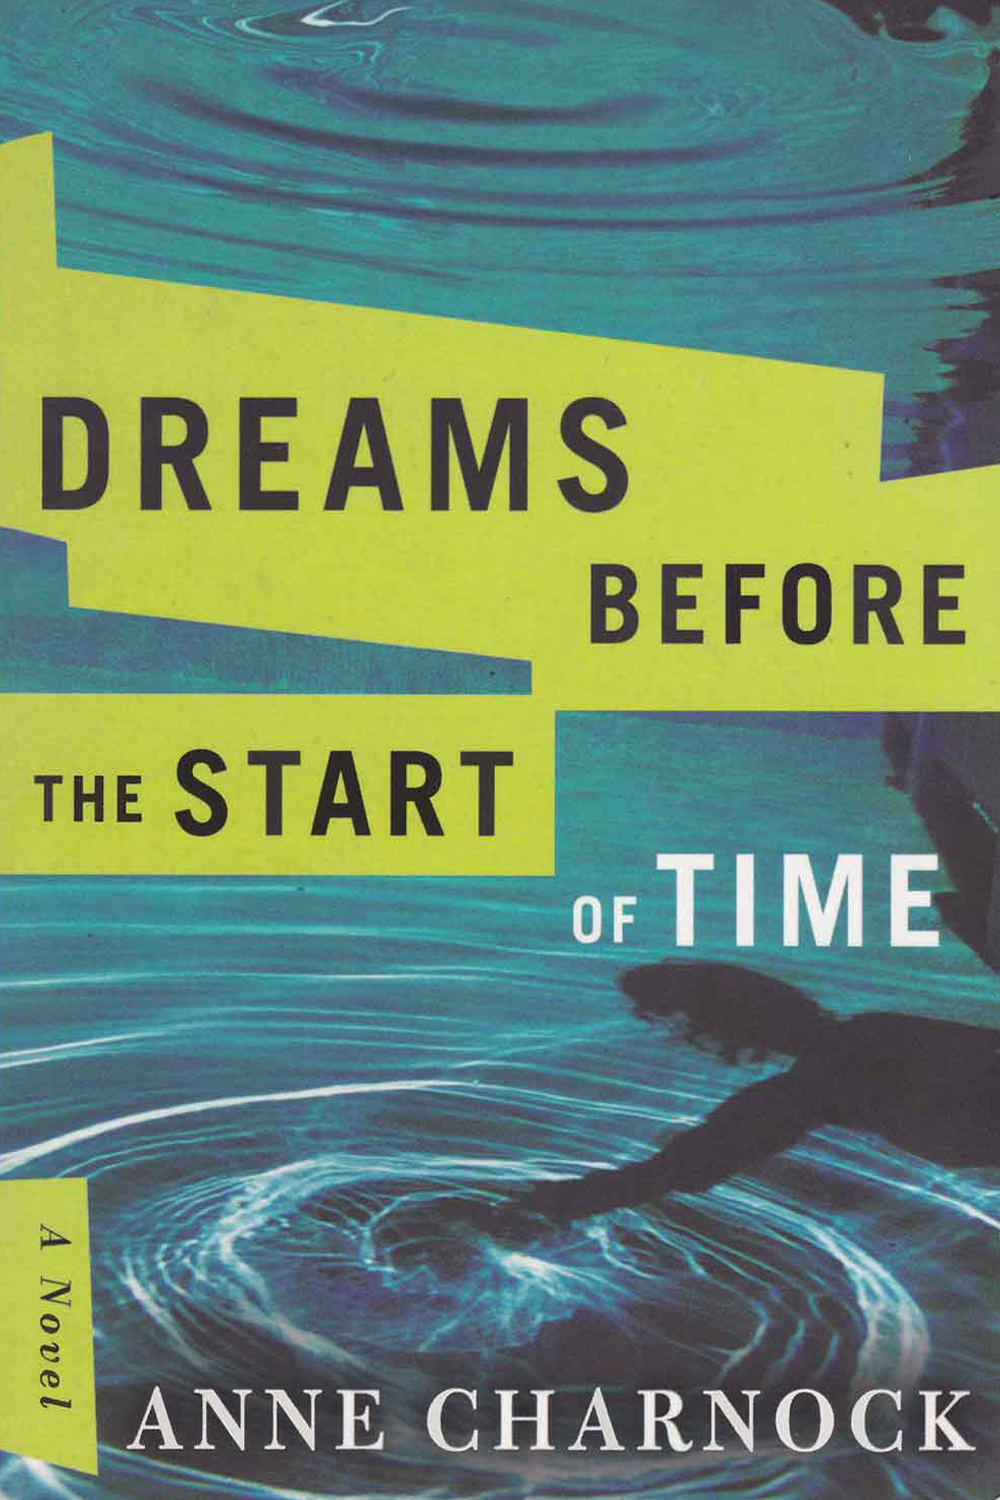 02-Dreams-Before-the-Start-of-Time